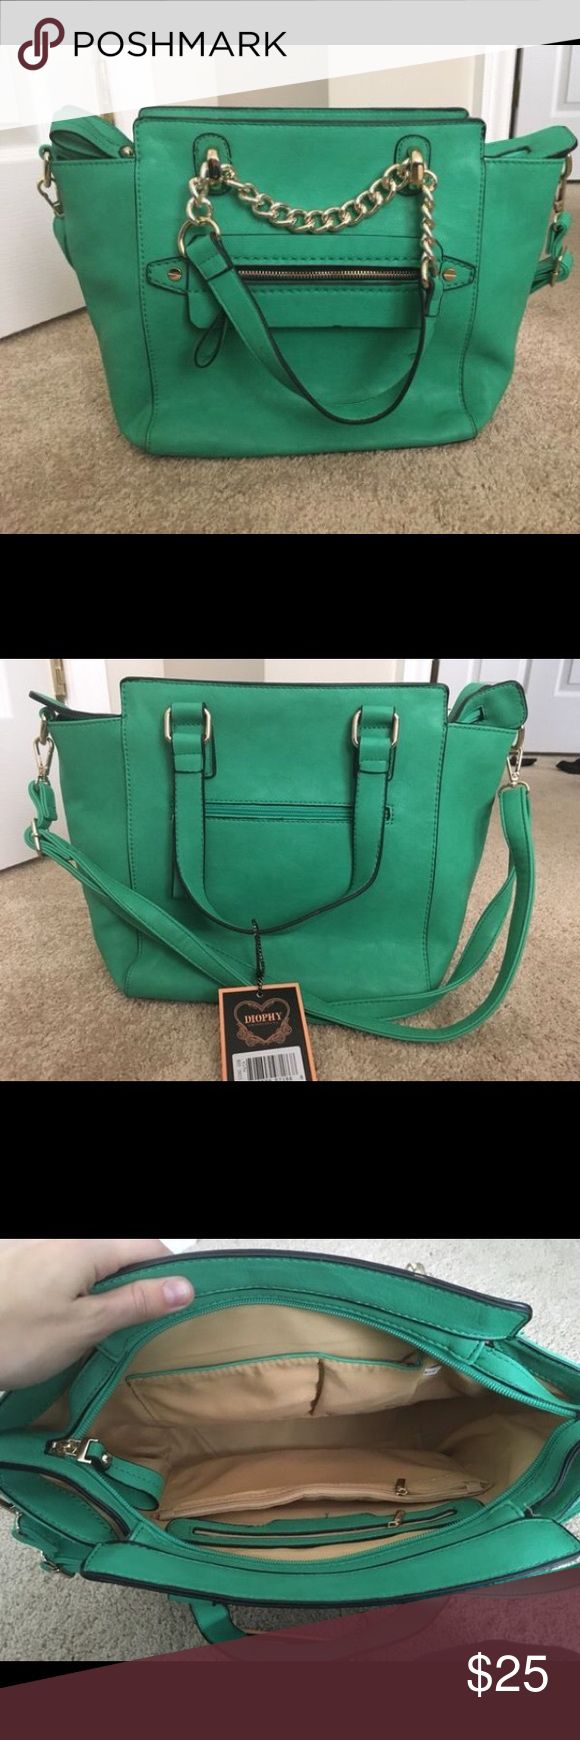 Mint Purse Never been used, still has tags on it. Just not my color. Perfect condition. No rips, tears, or stains. Non smoker. Diophy Bags